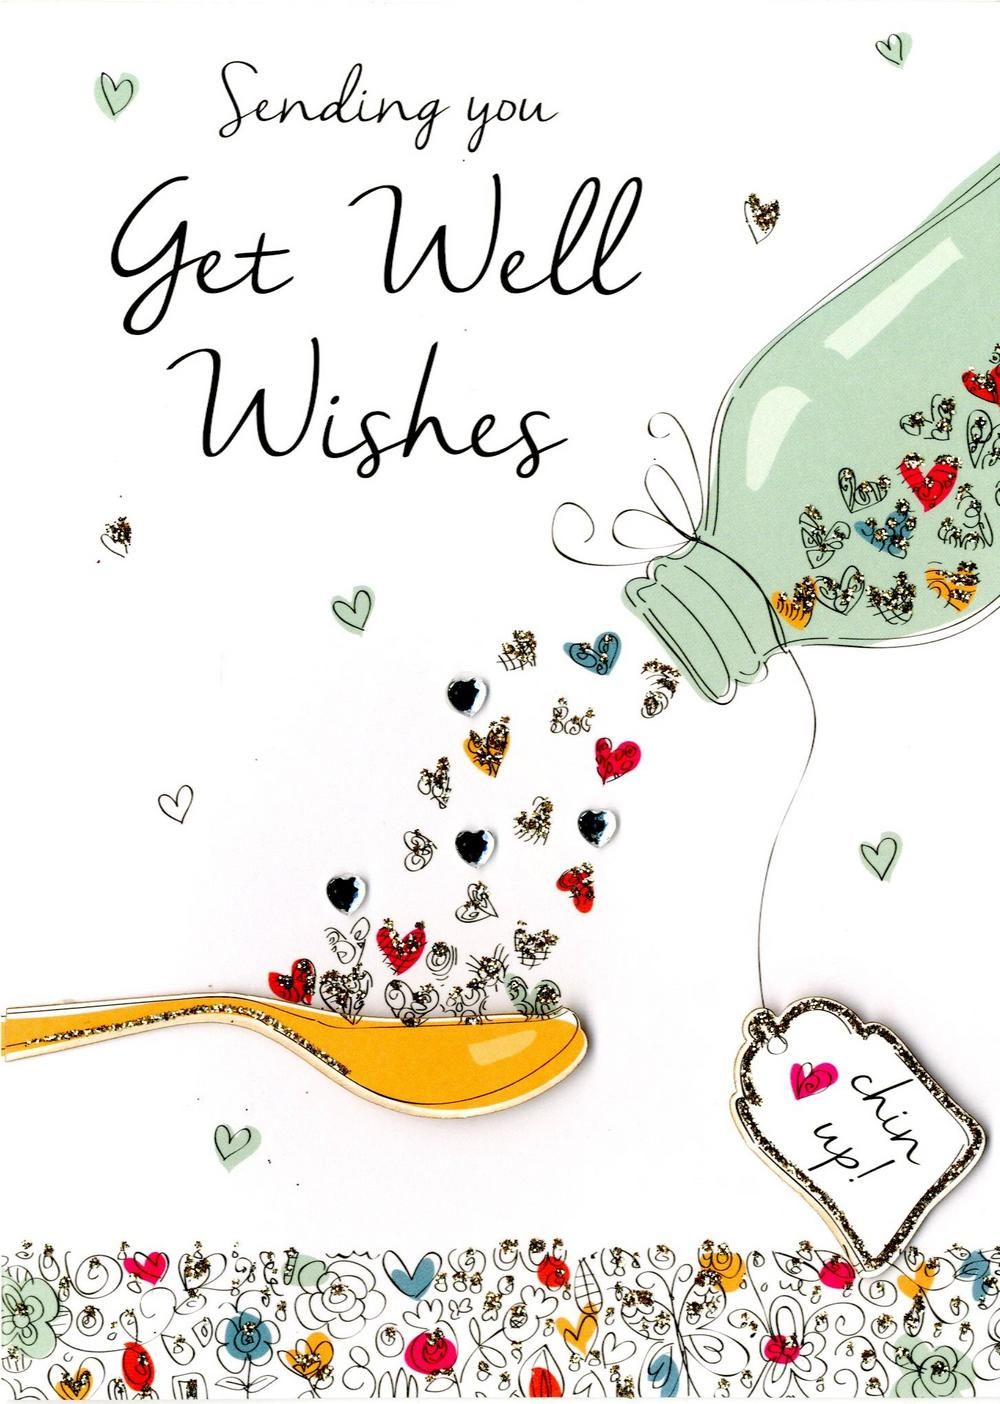 Thrifty Get Well Wishes Greeting Card More Get Well Wishes Greeting Card Feel Better Spanish Her Get Well Soon Messages Birthdays Get Well Soon Messages